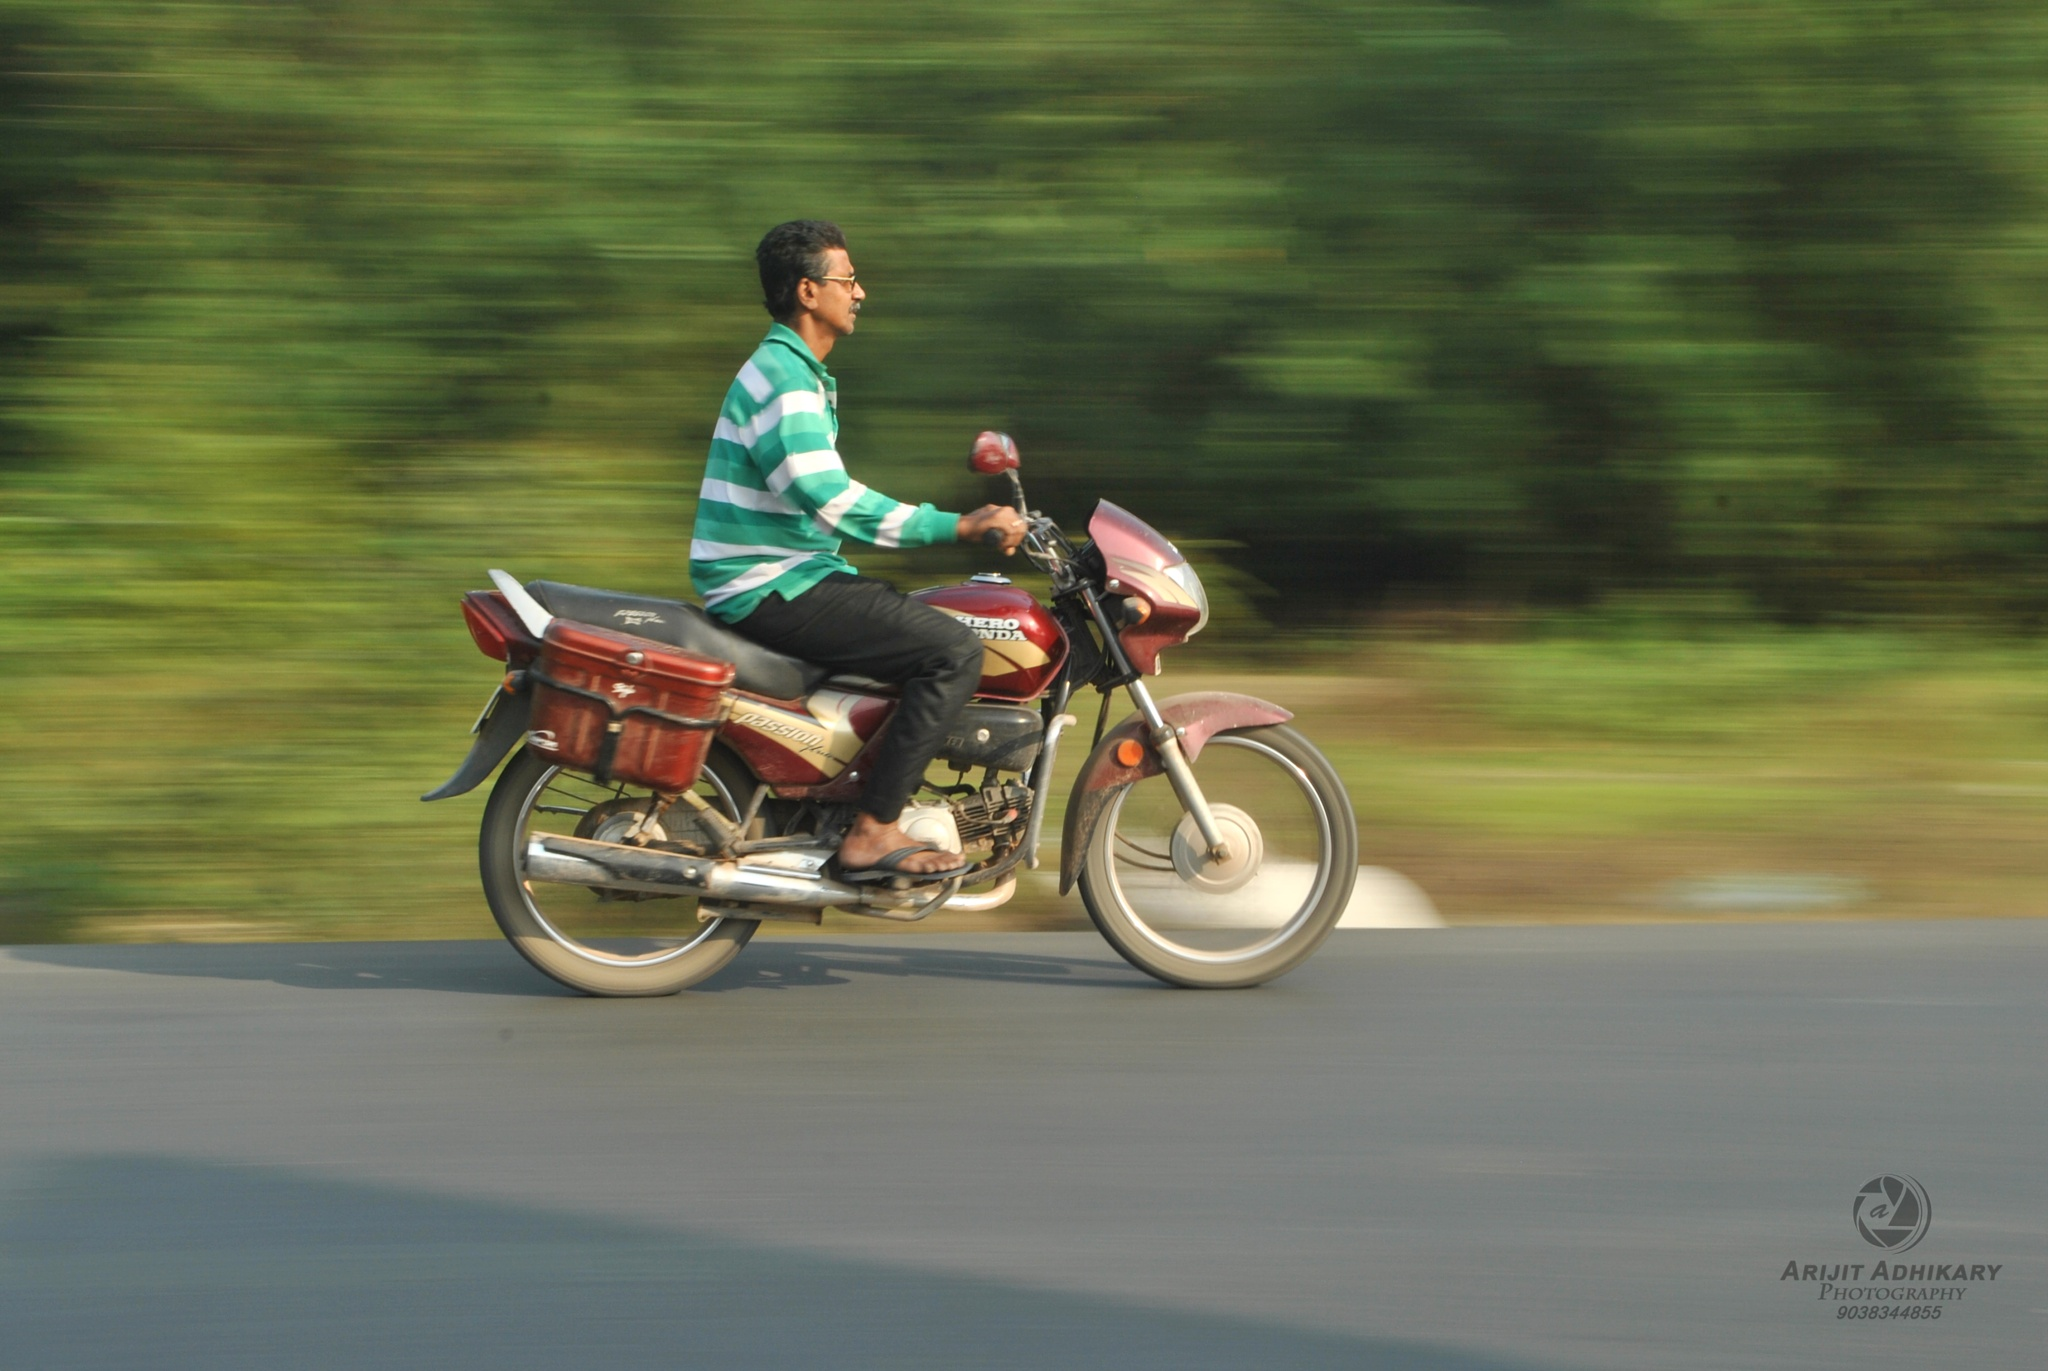 The Local Speedster by Arijit Adhikary